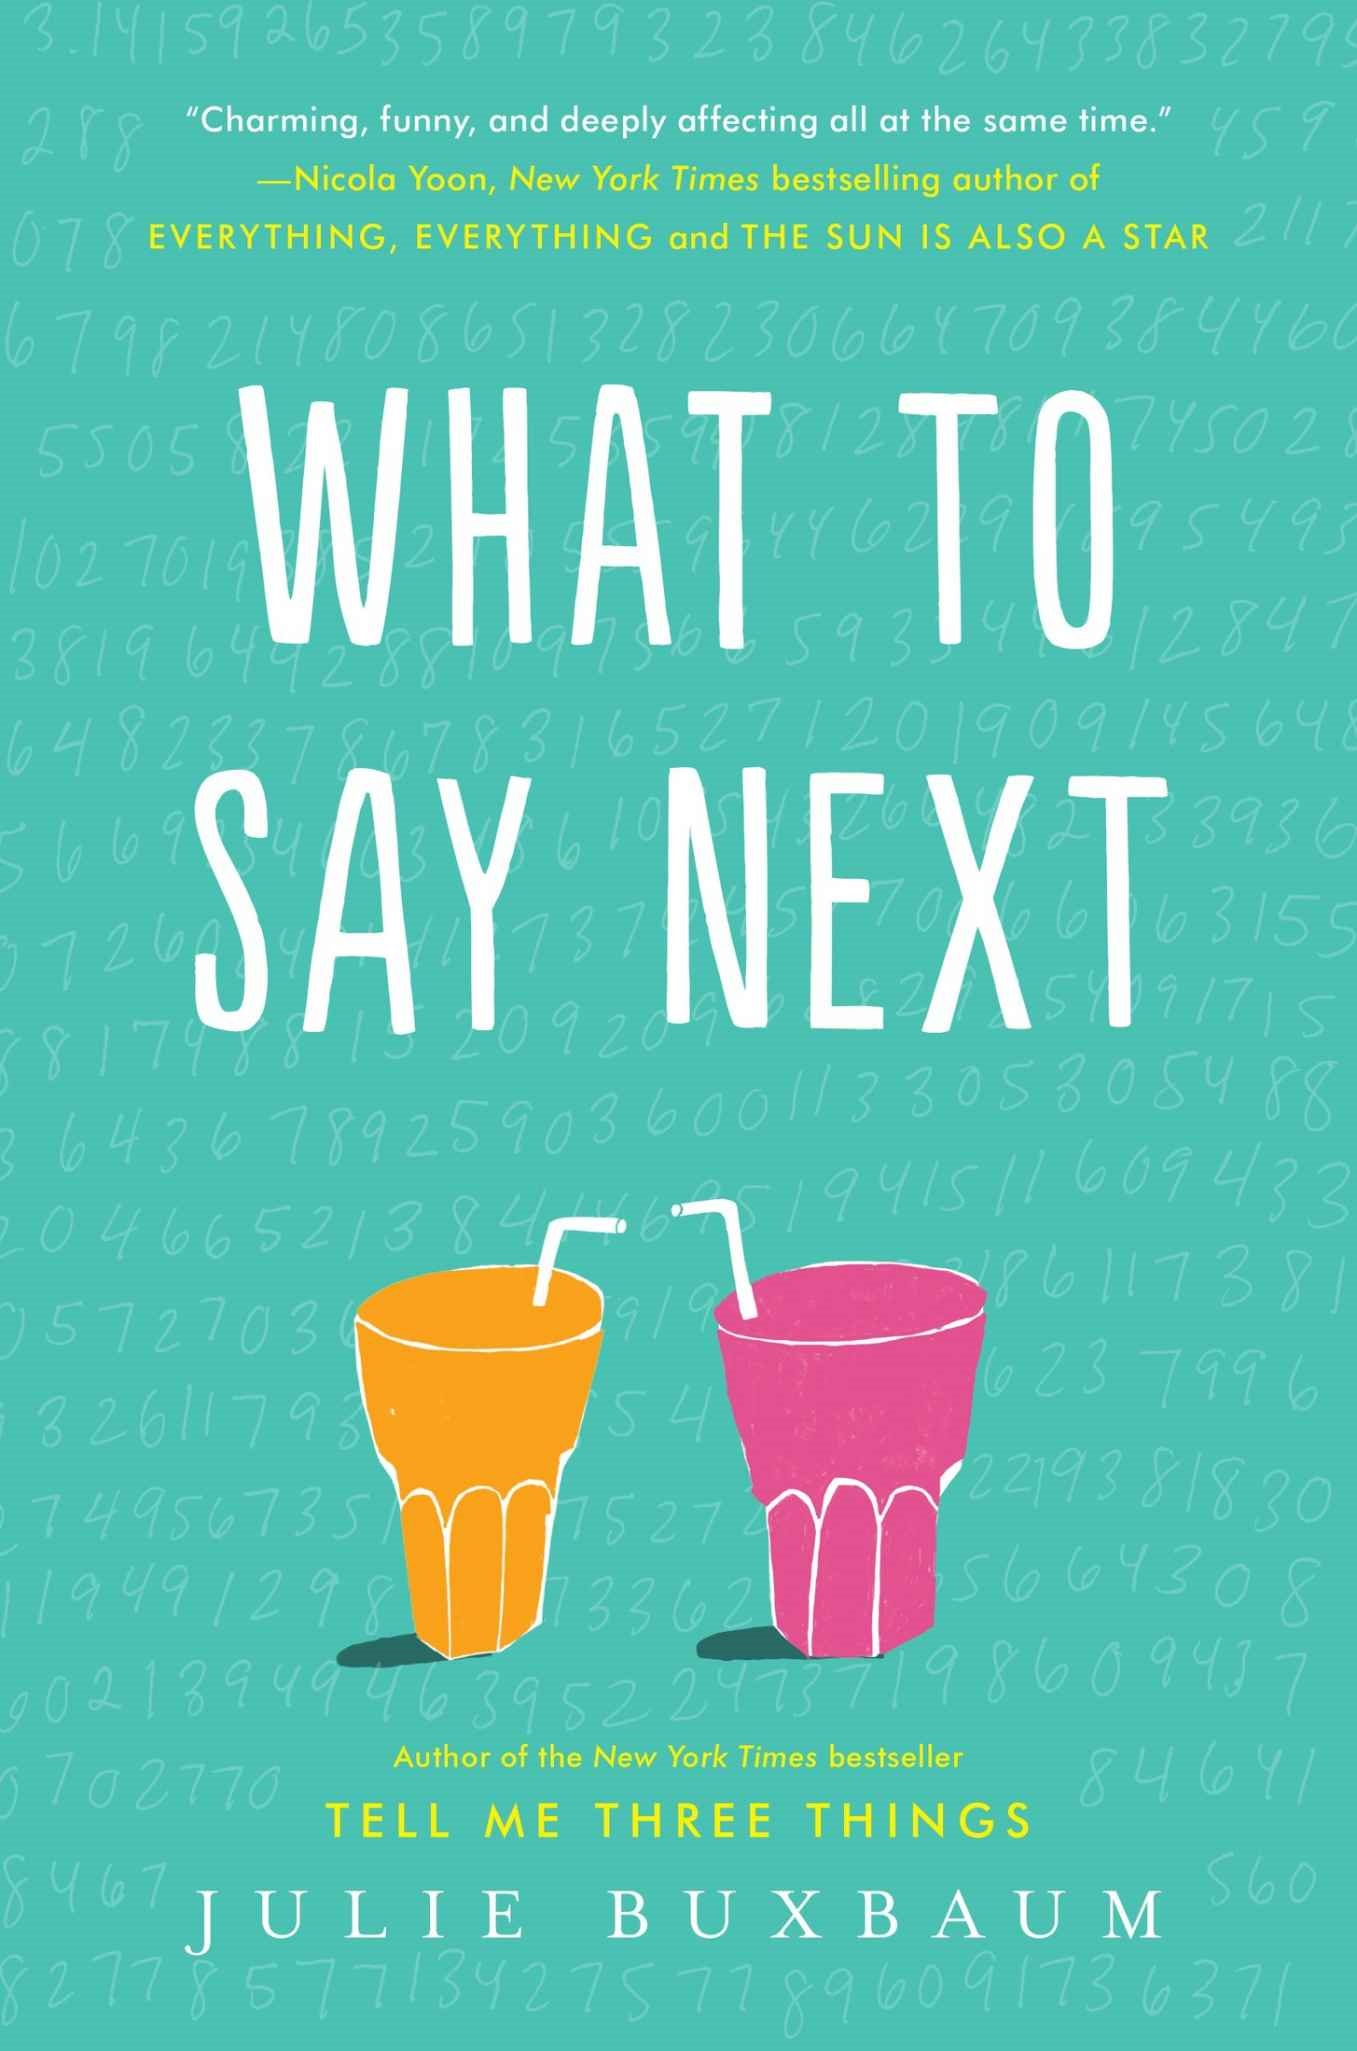 What to Say Next - Julie Buxbaum [kindle] [mobi]